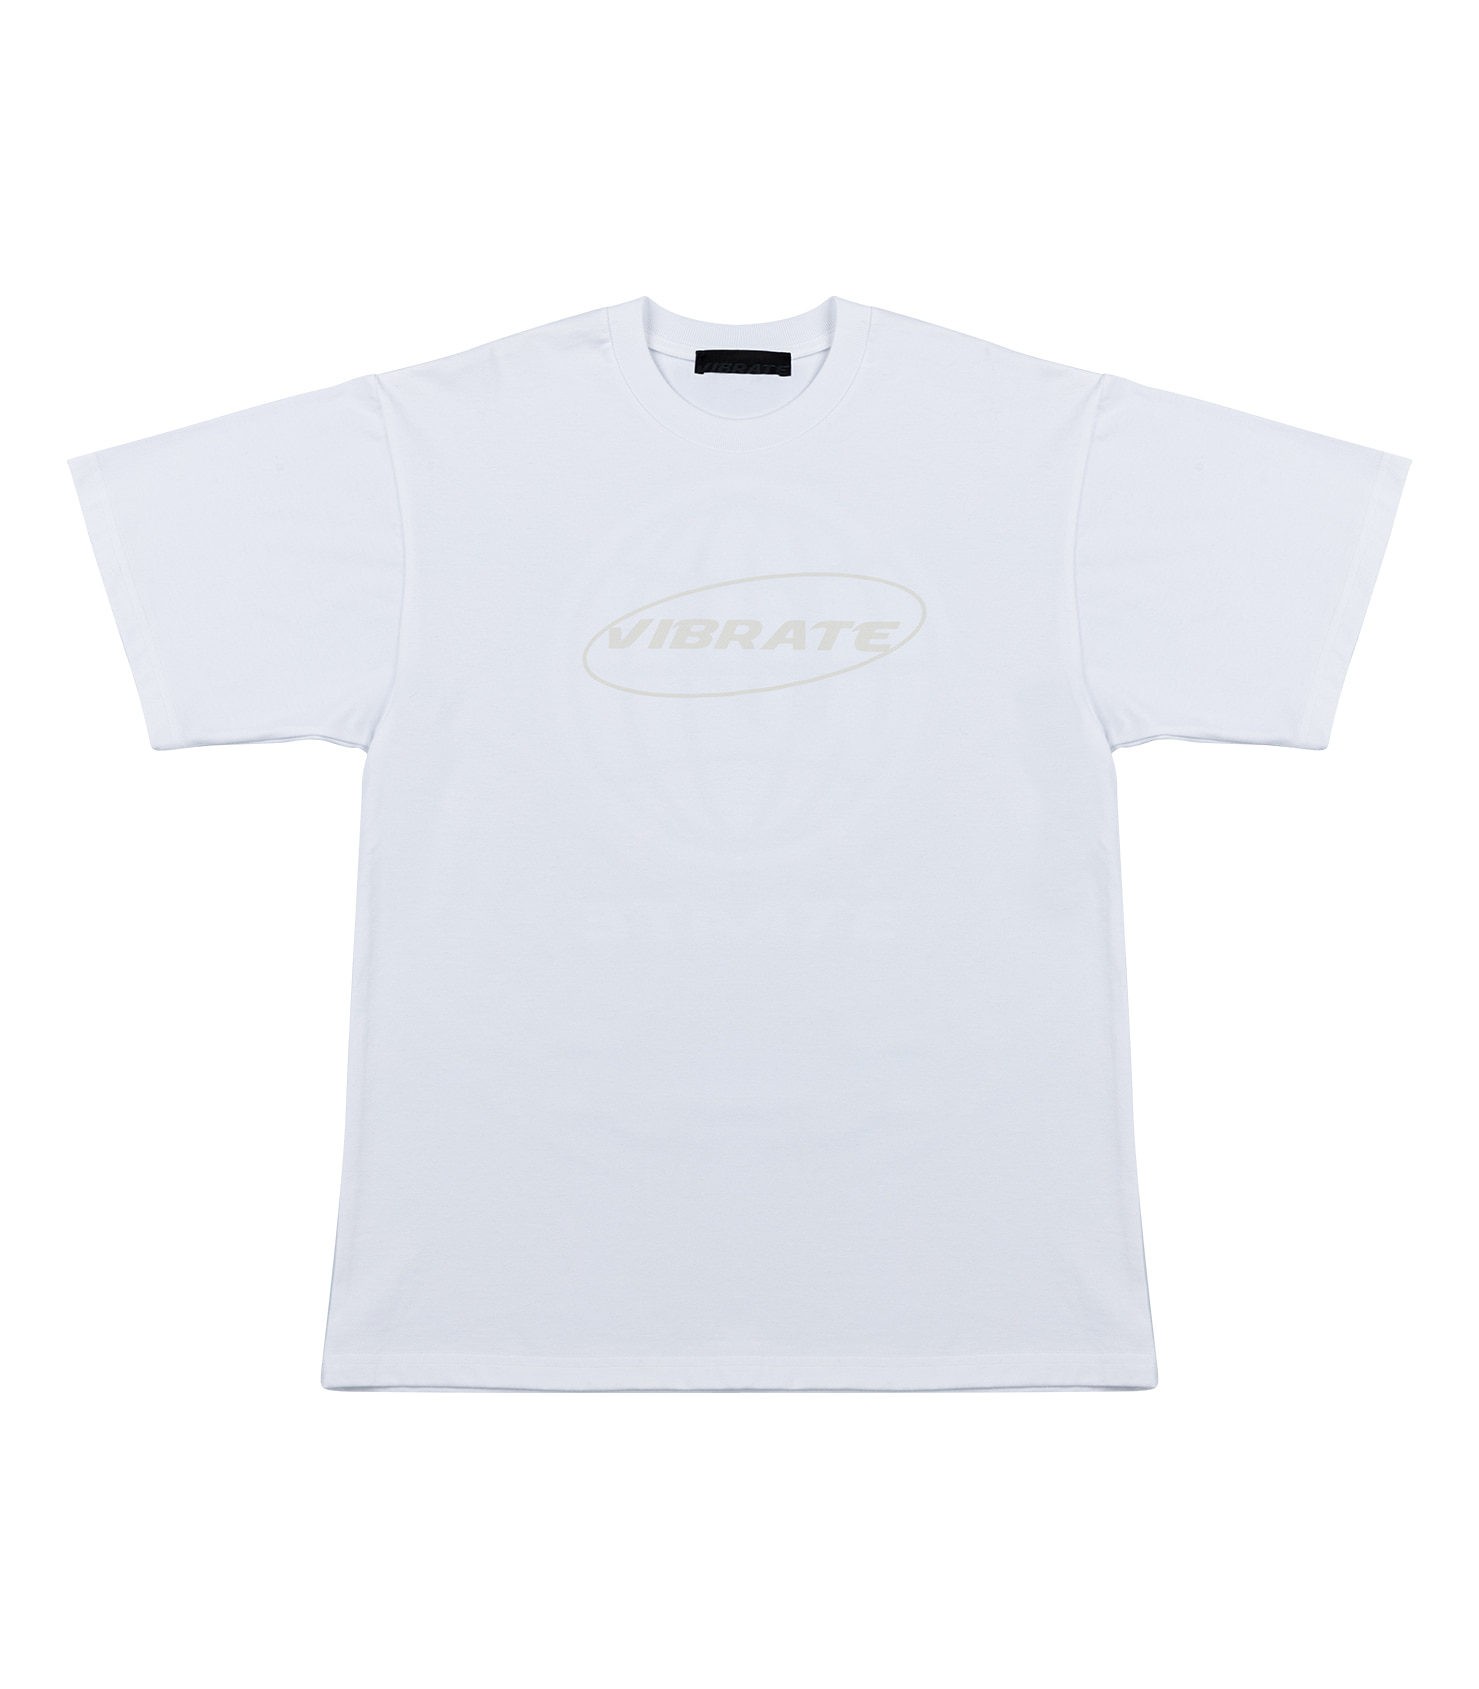 V FLASH M009 T-SHIRT (WHITE)